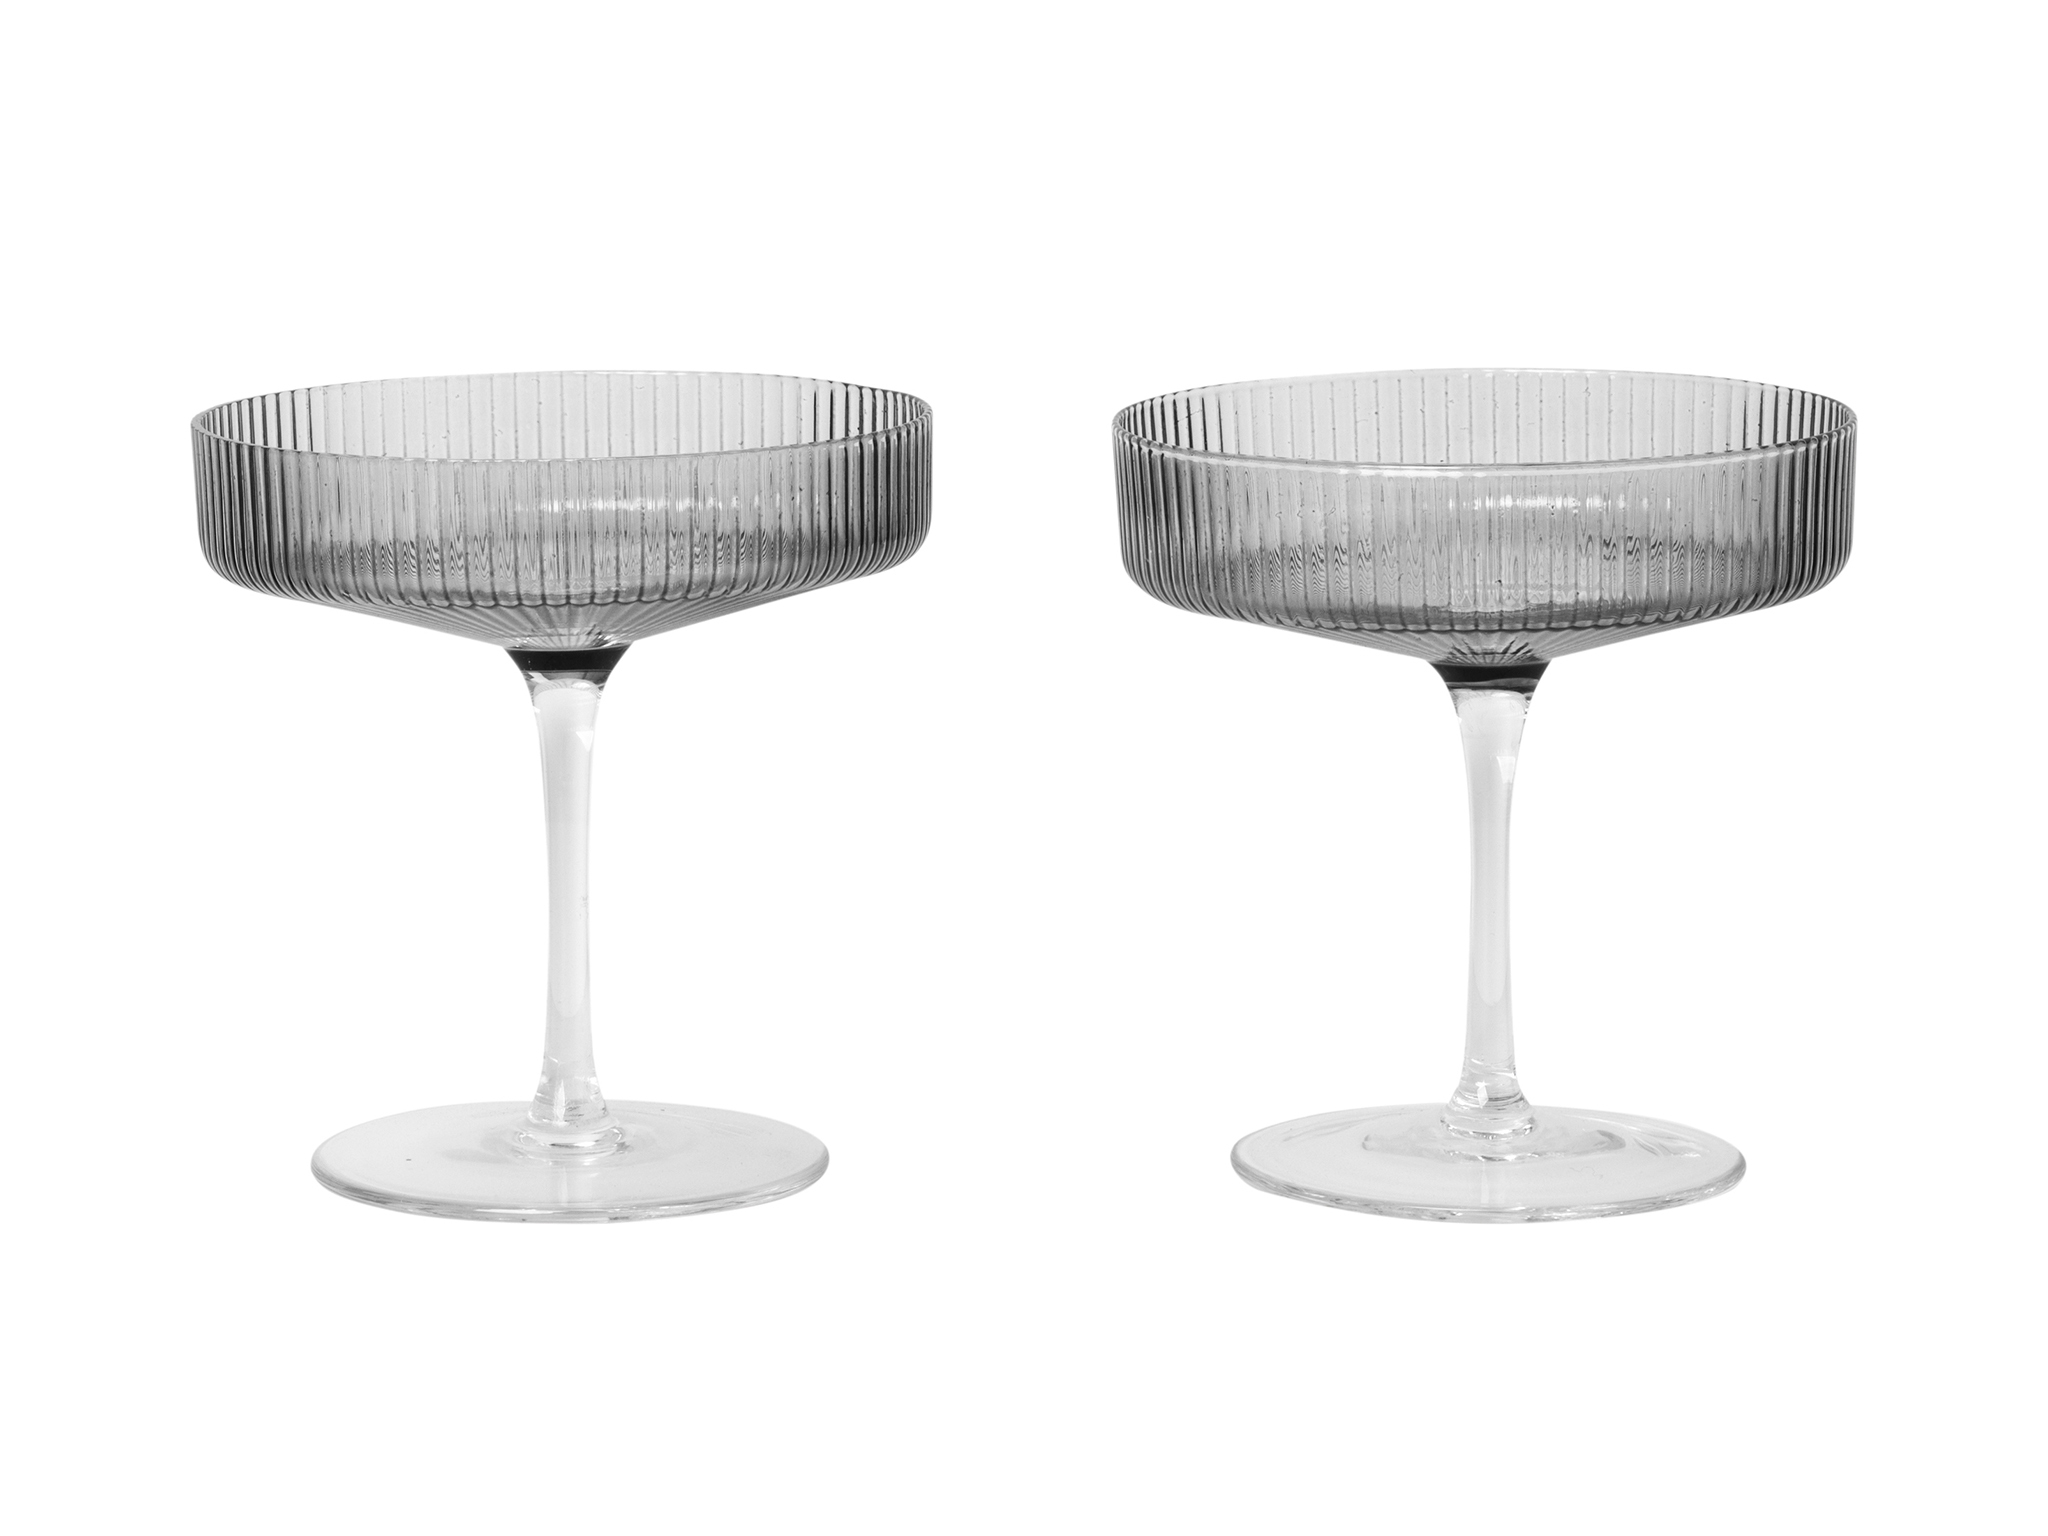 Ripple champagne saucers